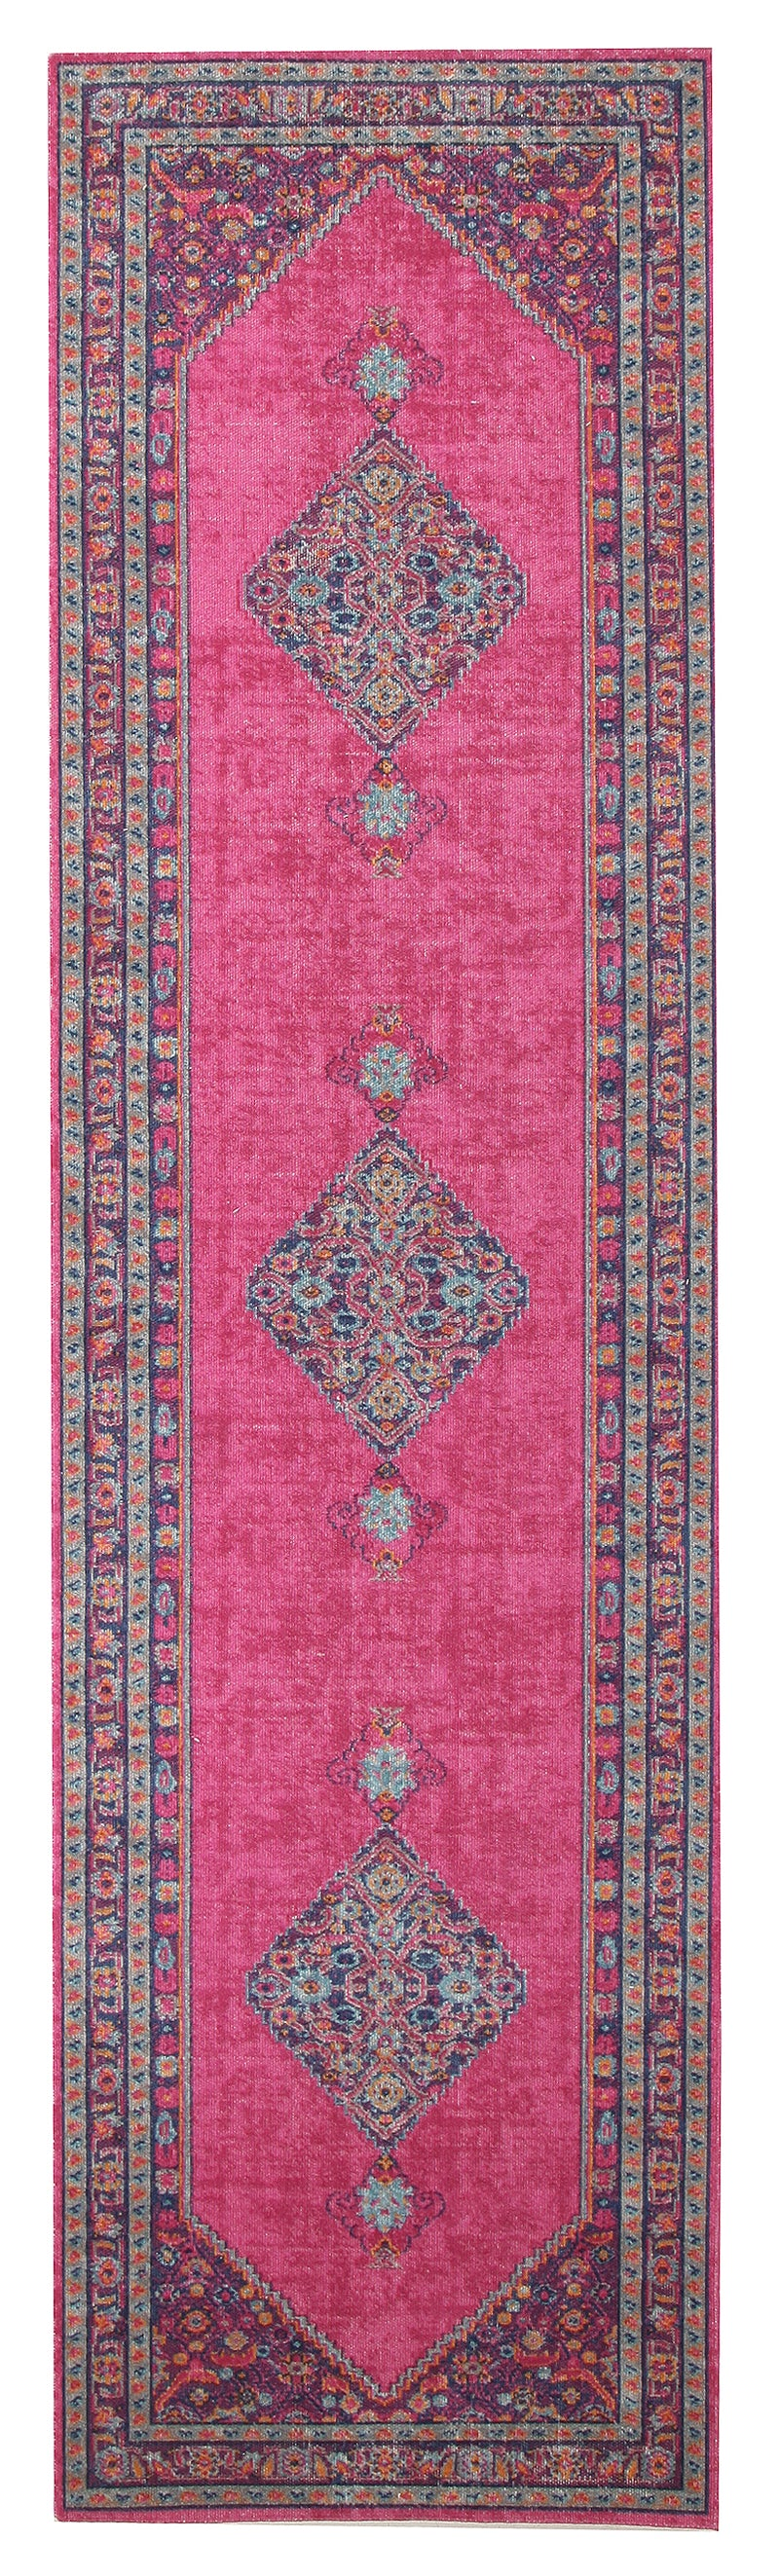 Whisper Diamond Pink Runner Rug - MaddieBelle